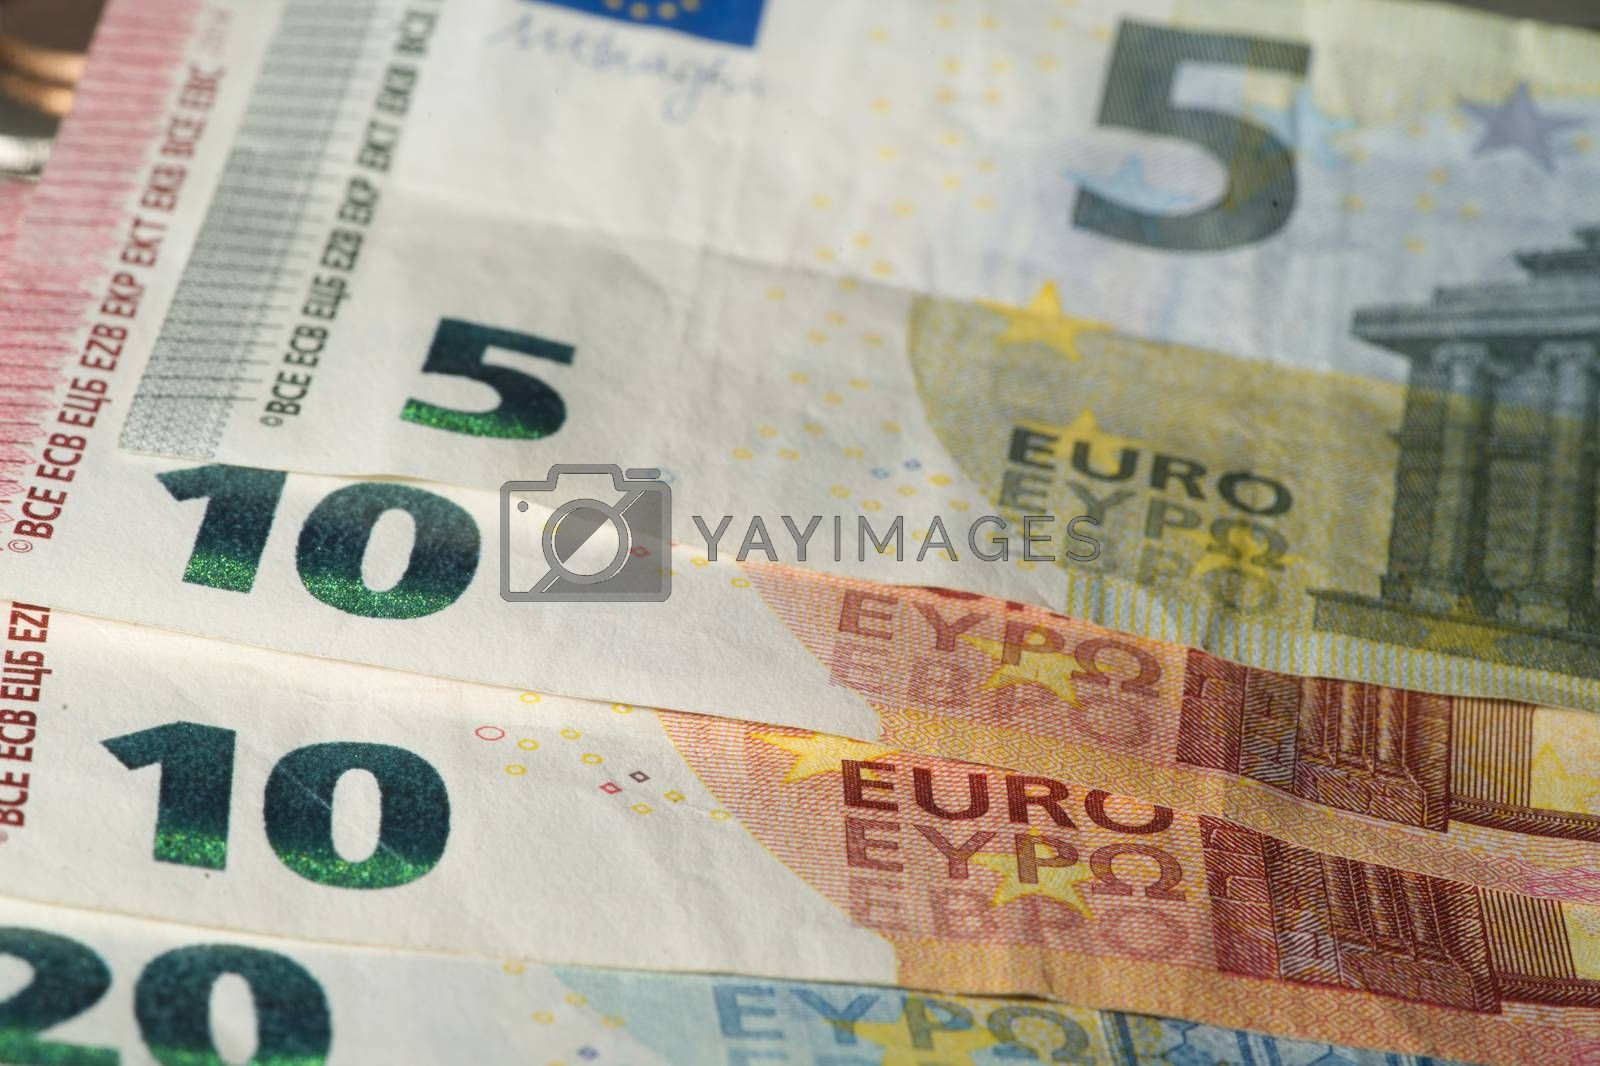 Euro, Thai bank notes and coin types, abstract.